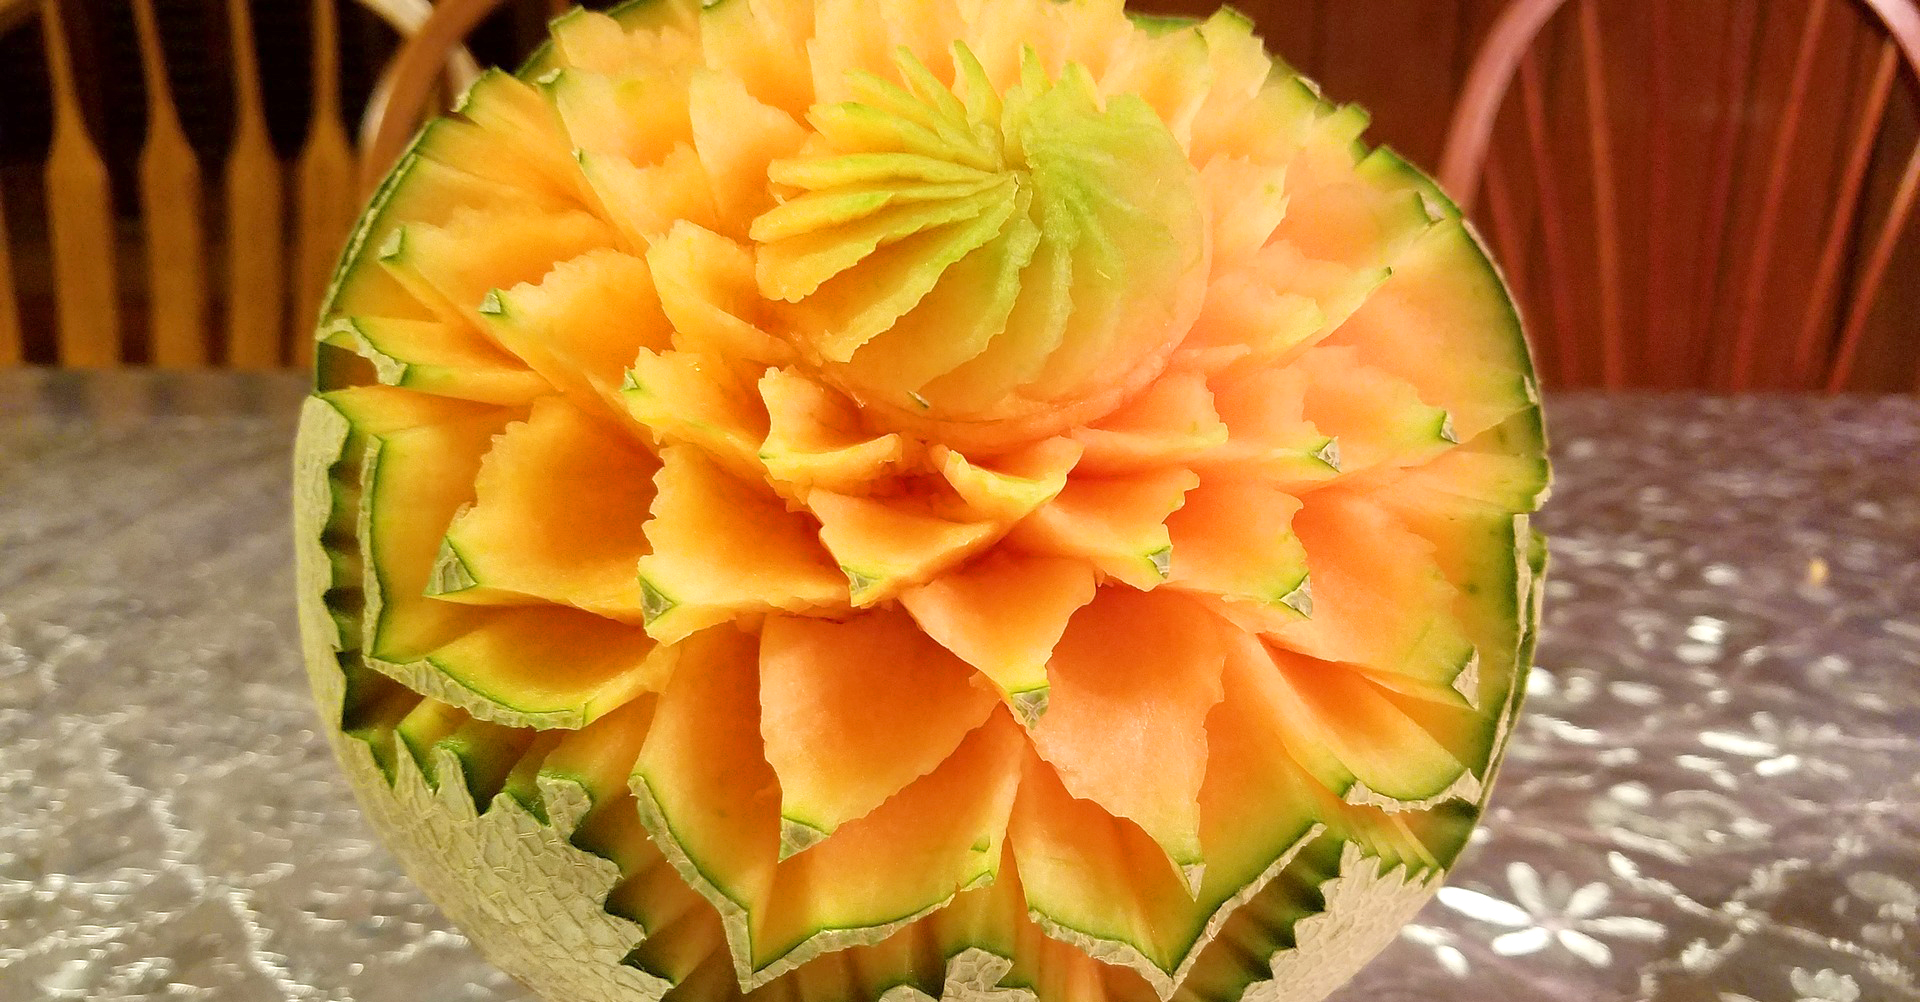 Carved cantaloupes can create a beautiful (and edible) centerpiece.